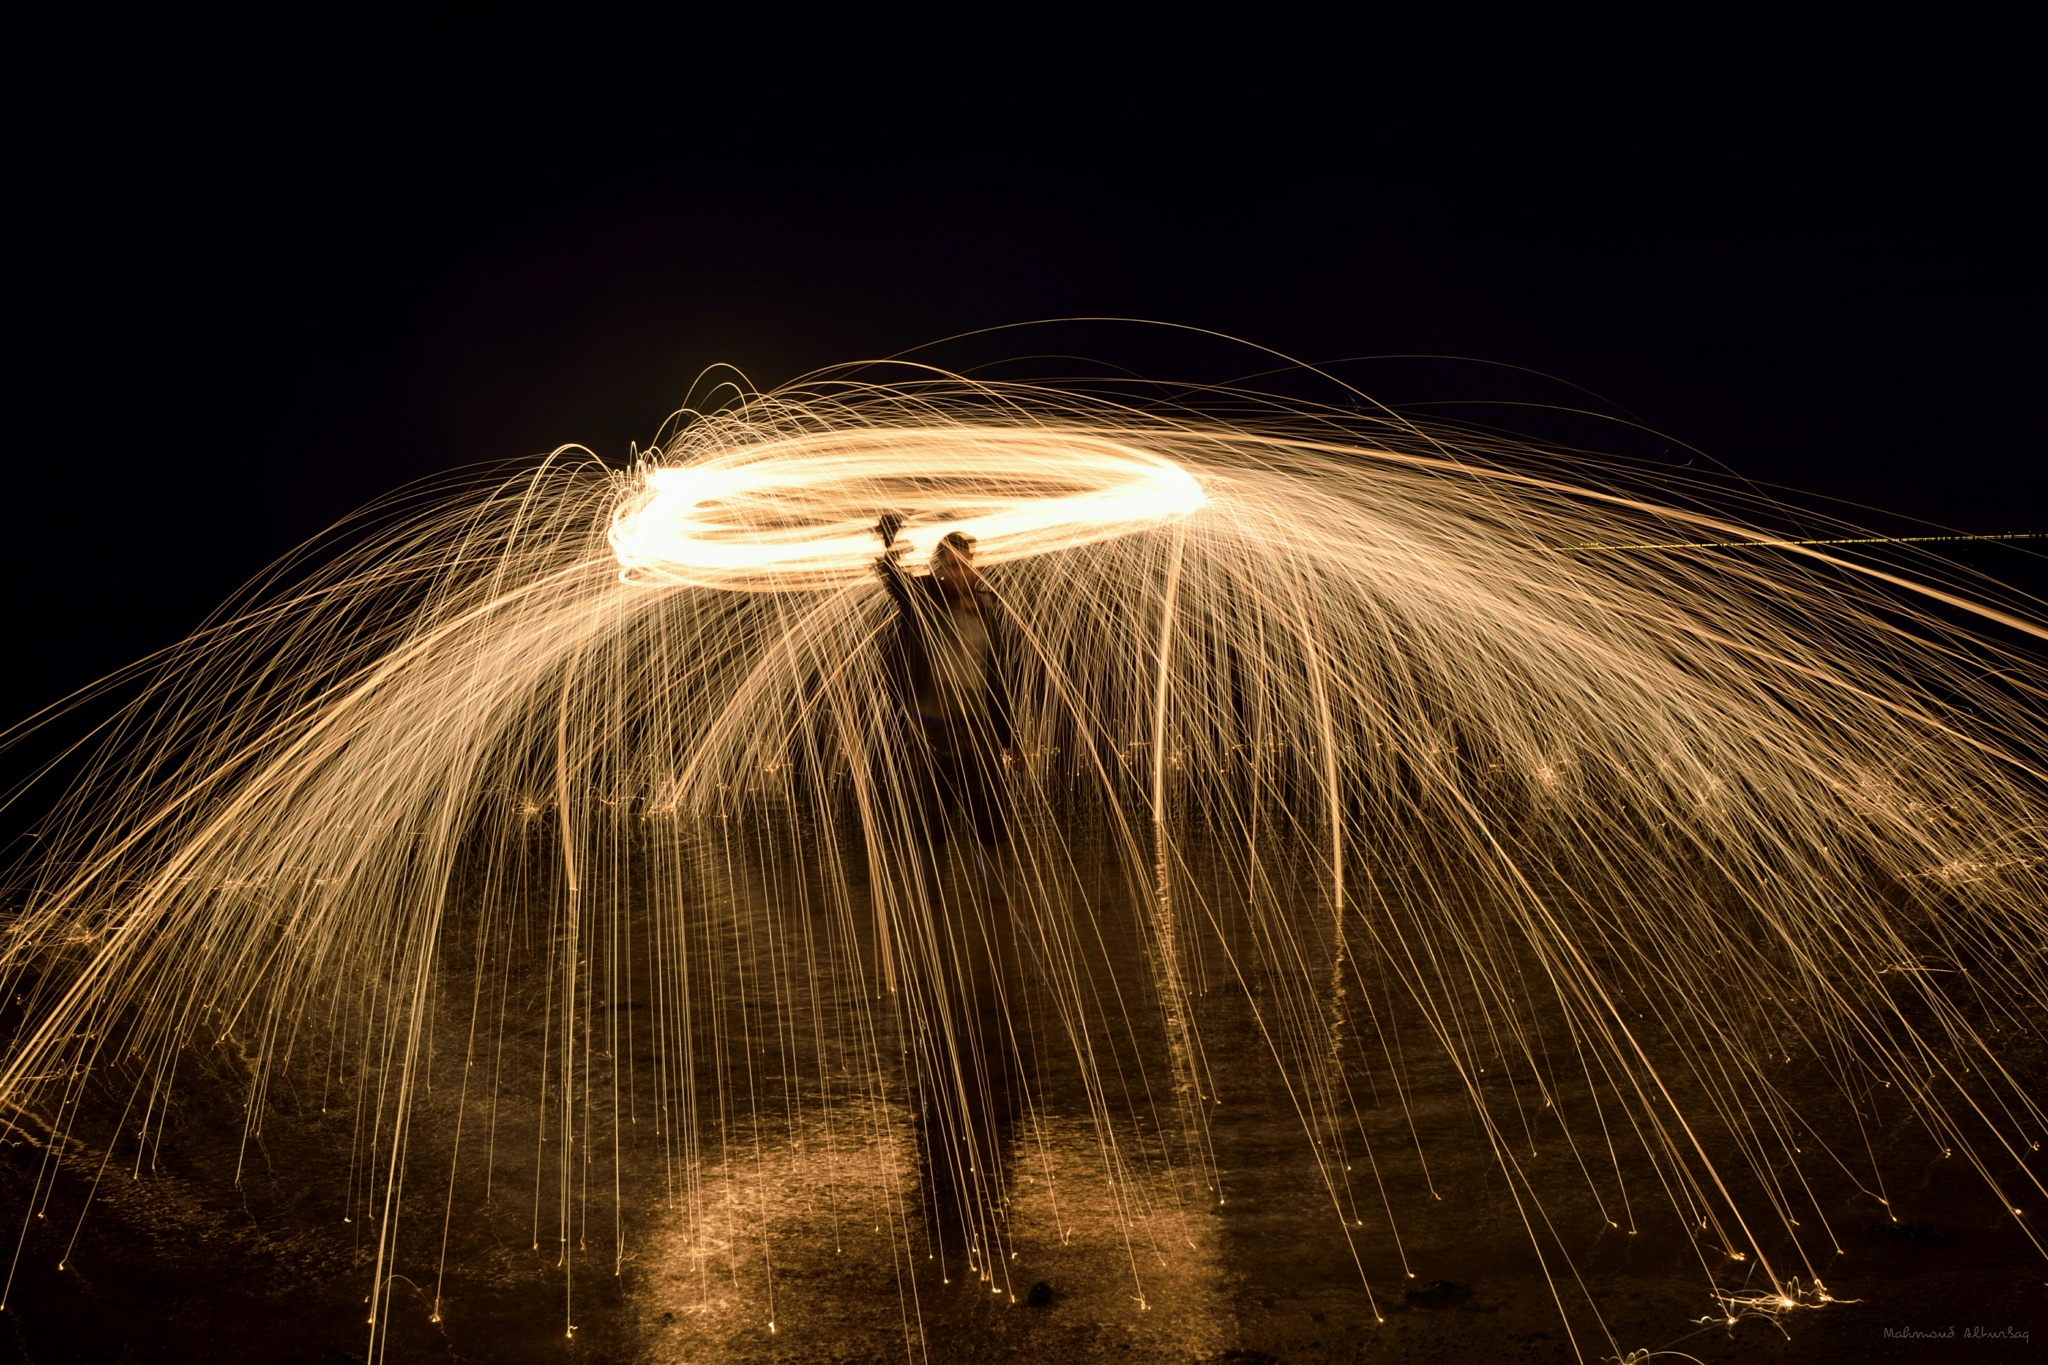 Steelwool on th beach by Mahmoud Alturbaq